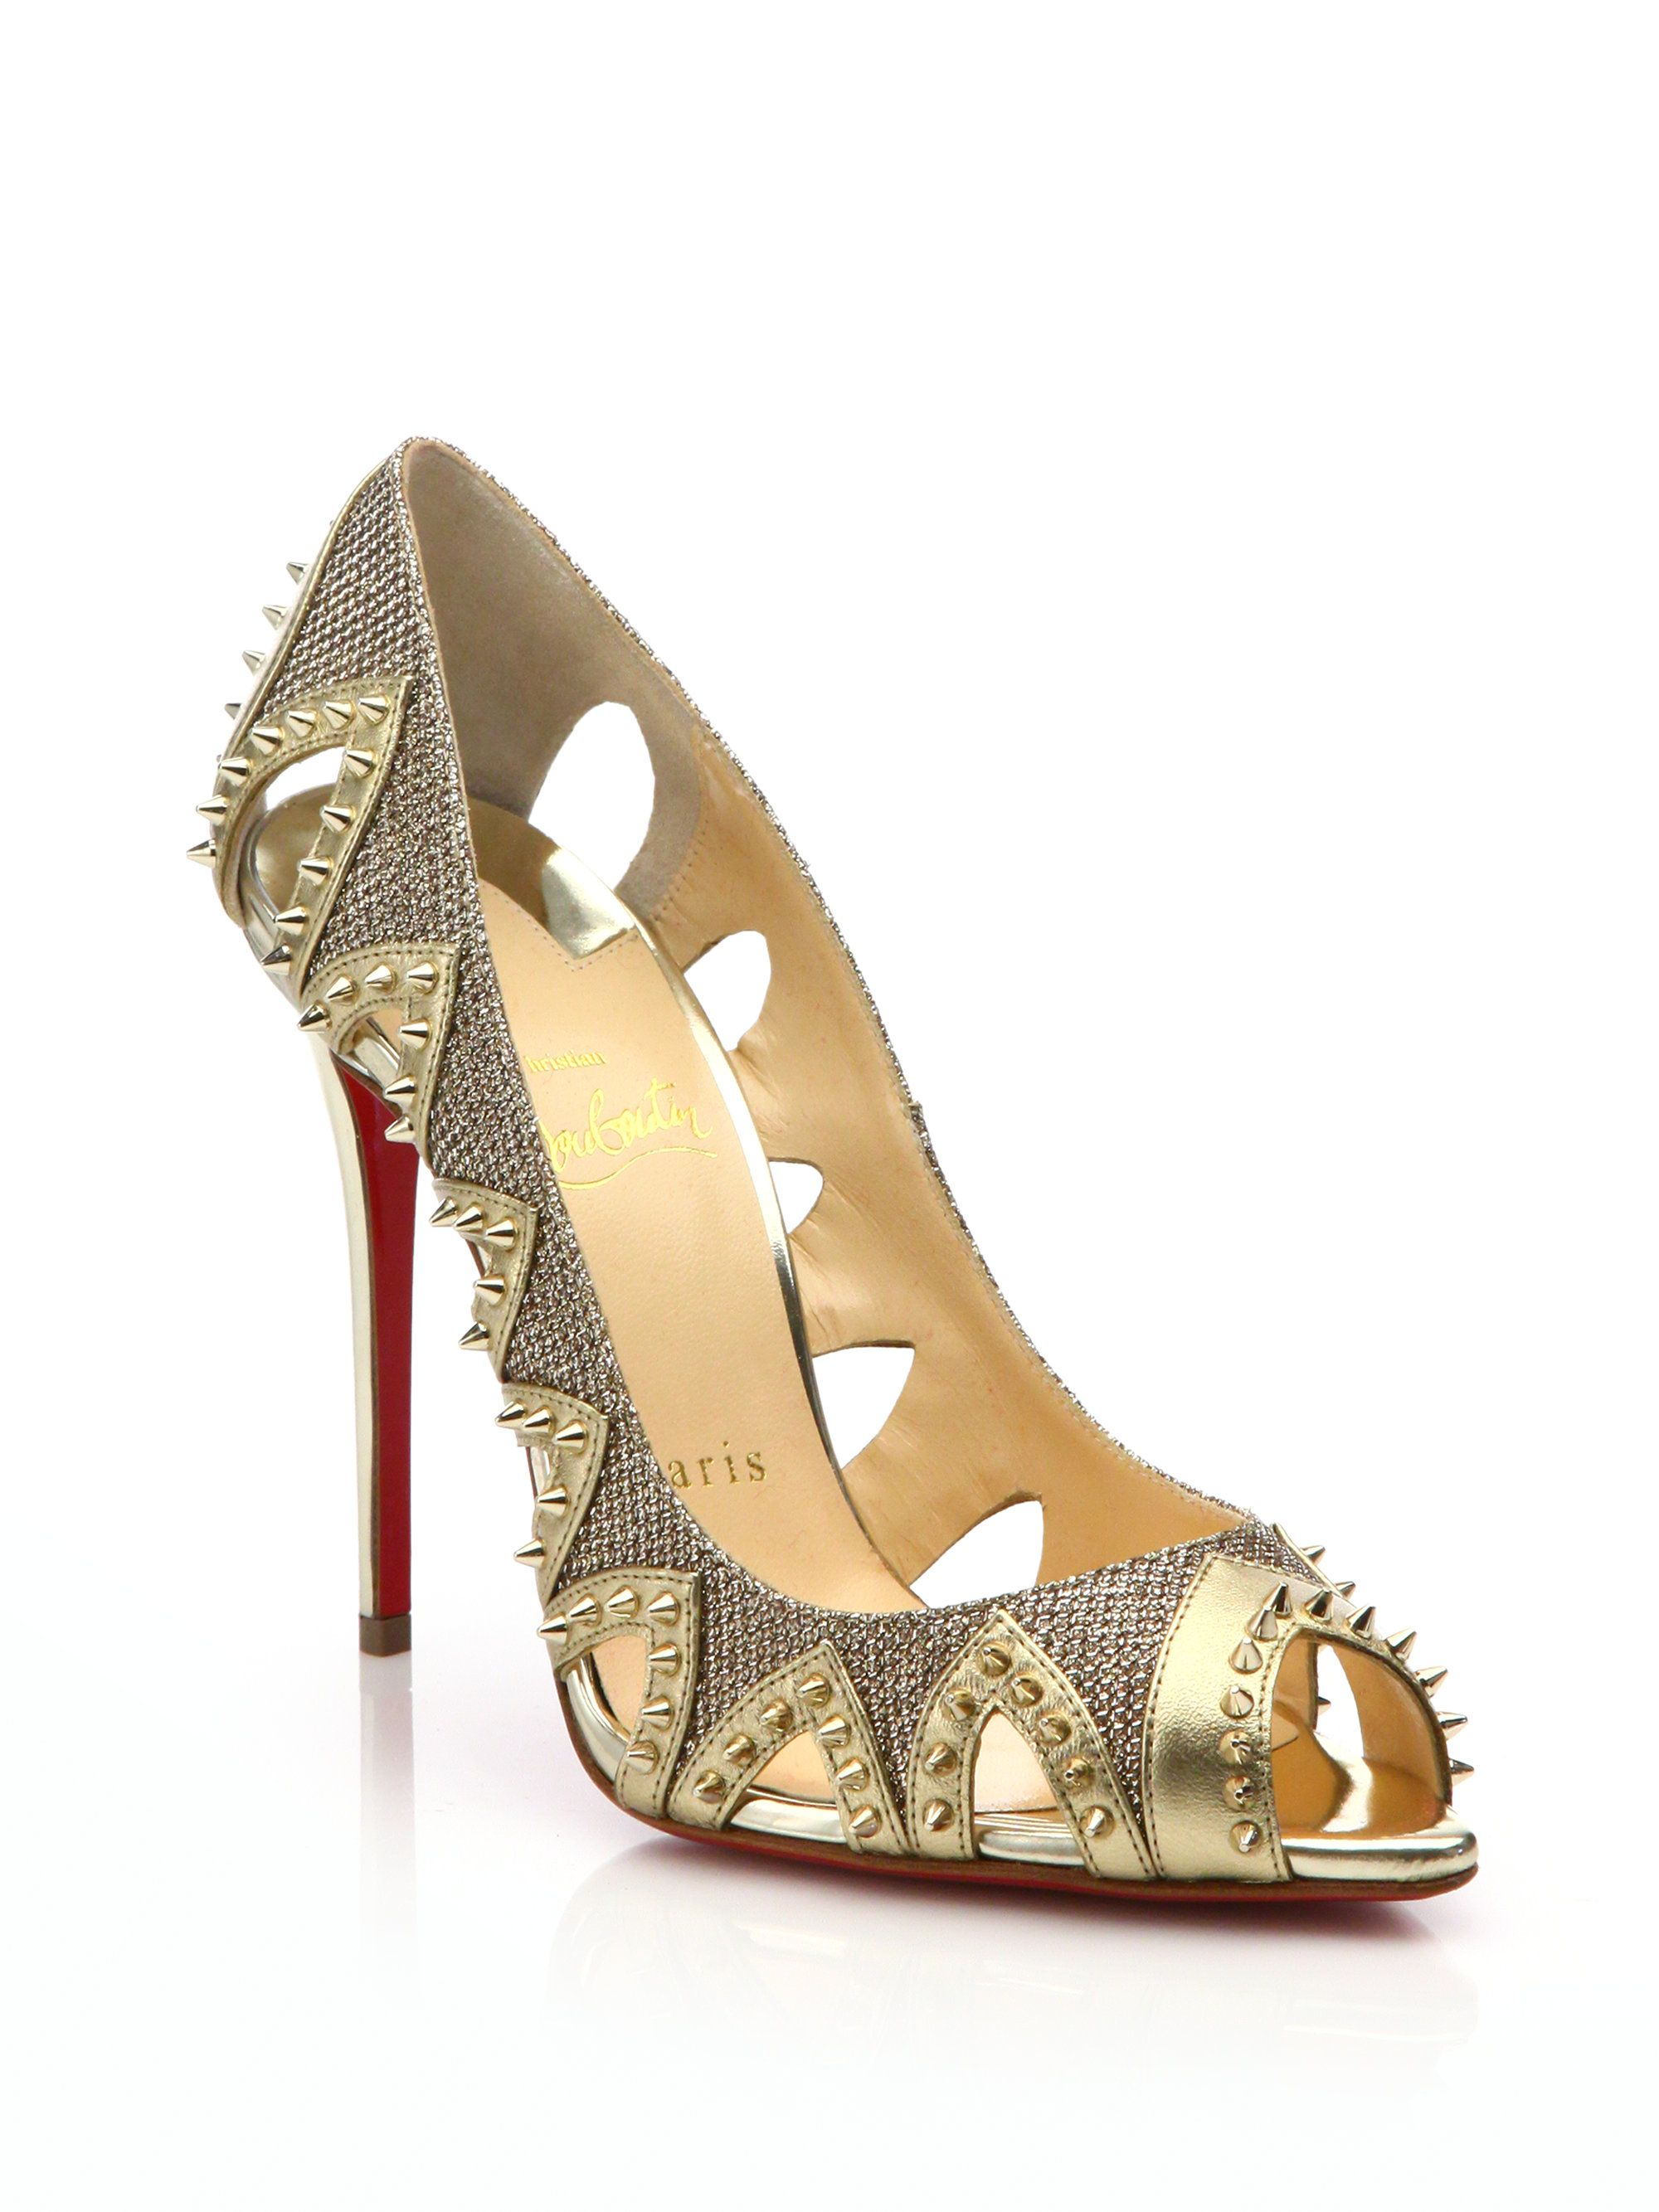 Christian Louboutin Cutout Pointed-Toe Pumps sale online cheap 0O8GETew